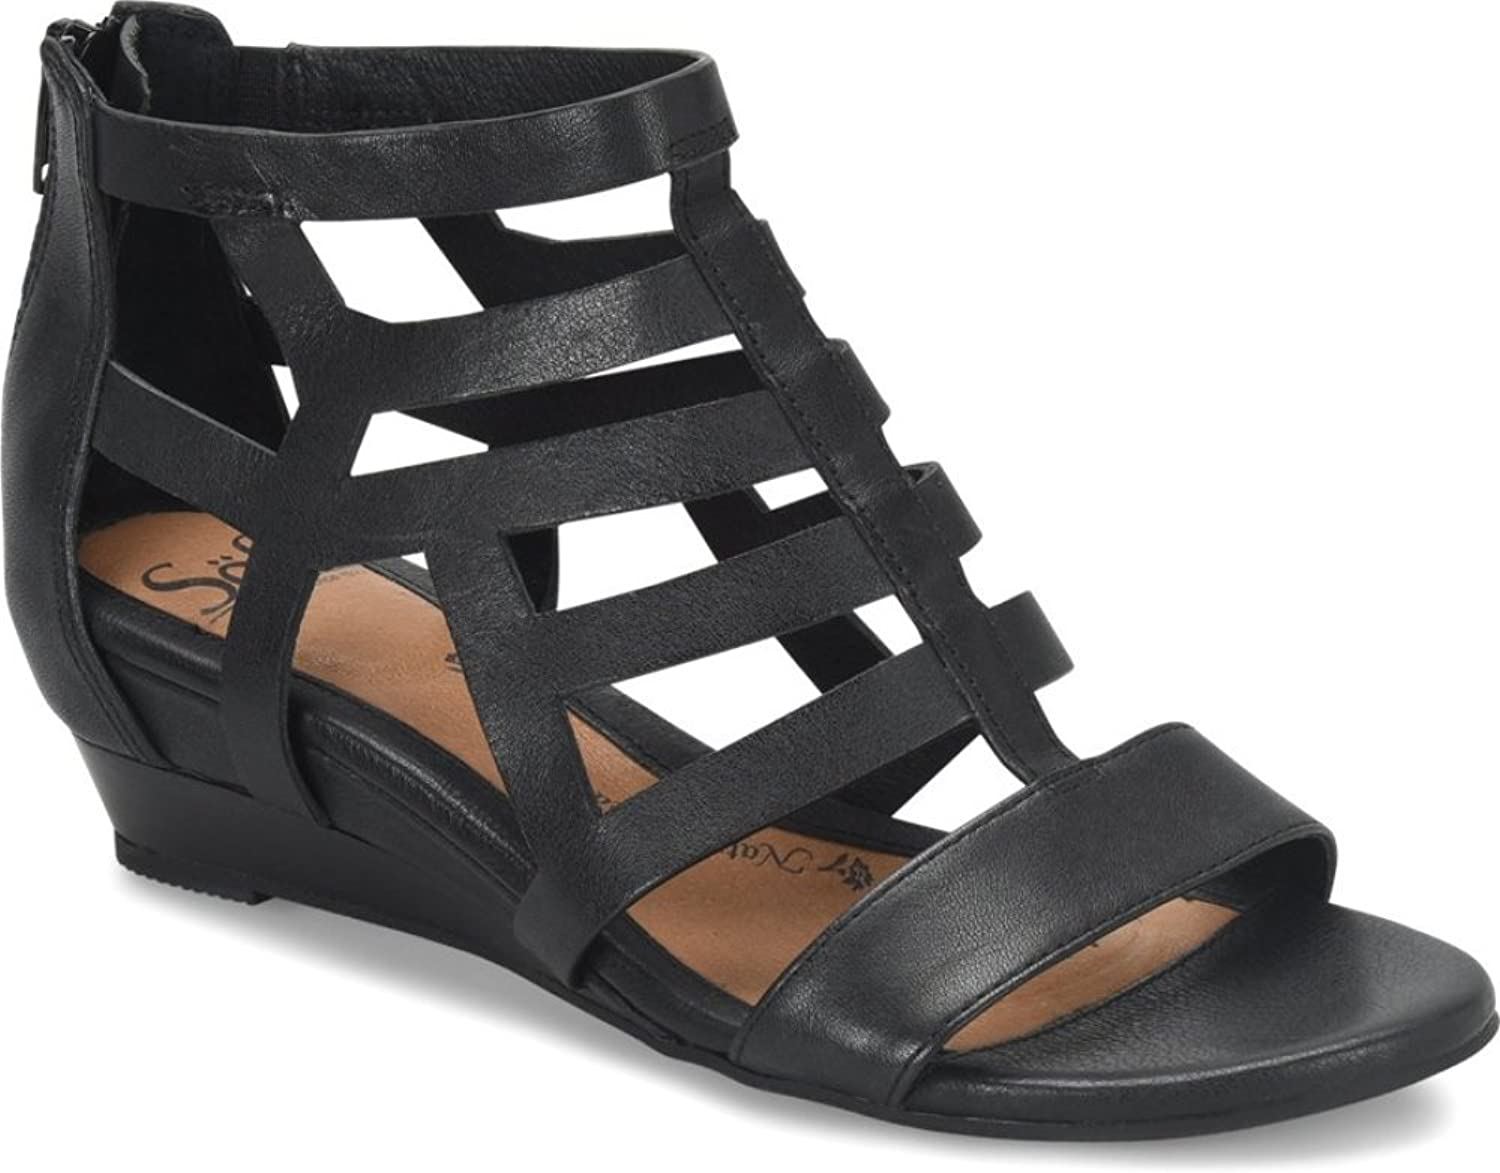 Sofft Womens Ravello Open Toe Casual Strappy Sandals, Black, Size 8.5